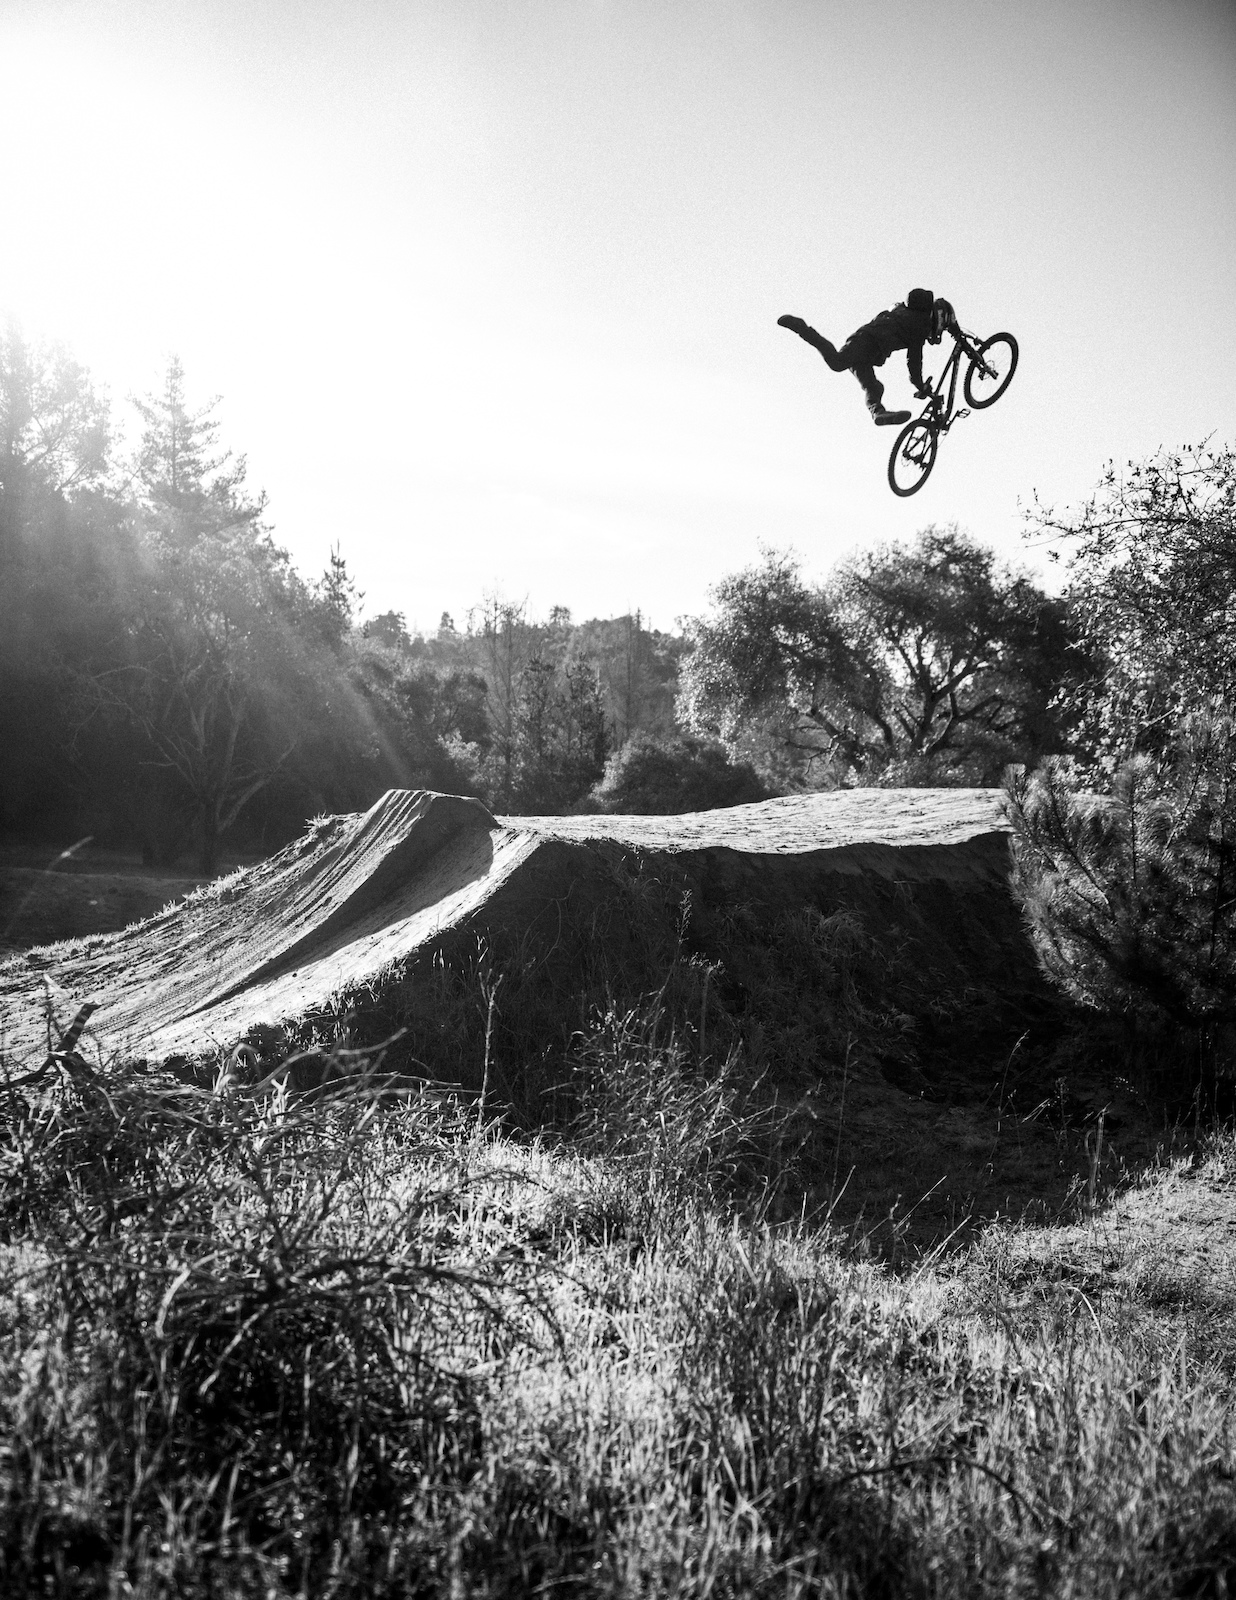 Brandon Semenuk in Simplicity. Photo Credit: Ross Measures